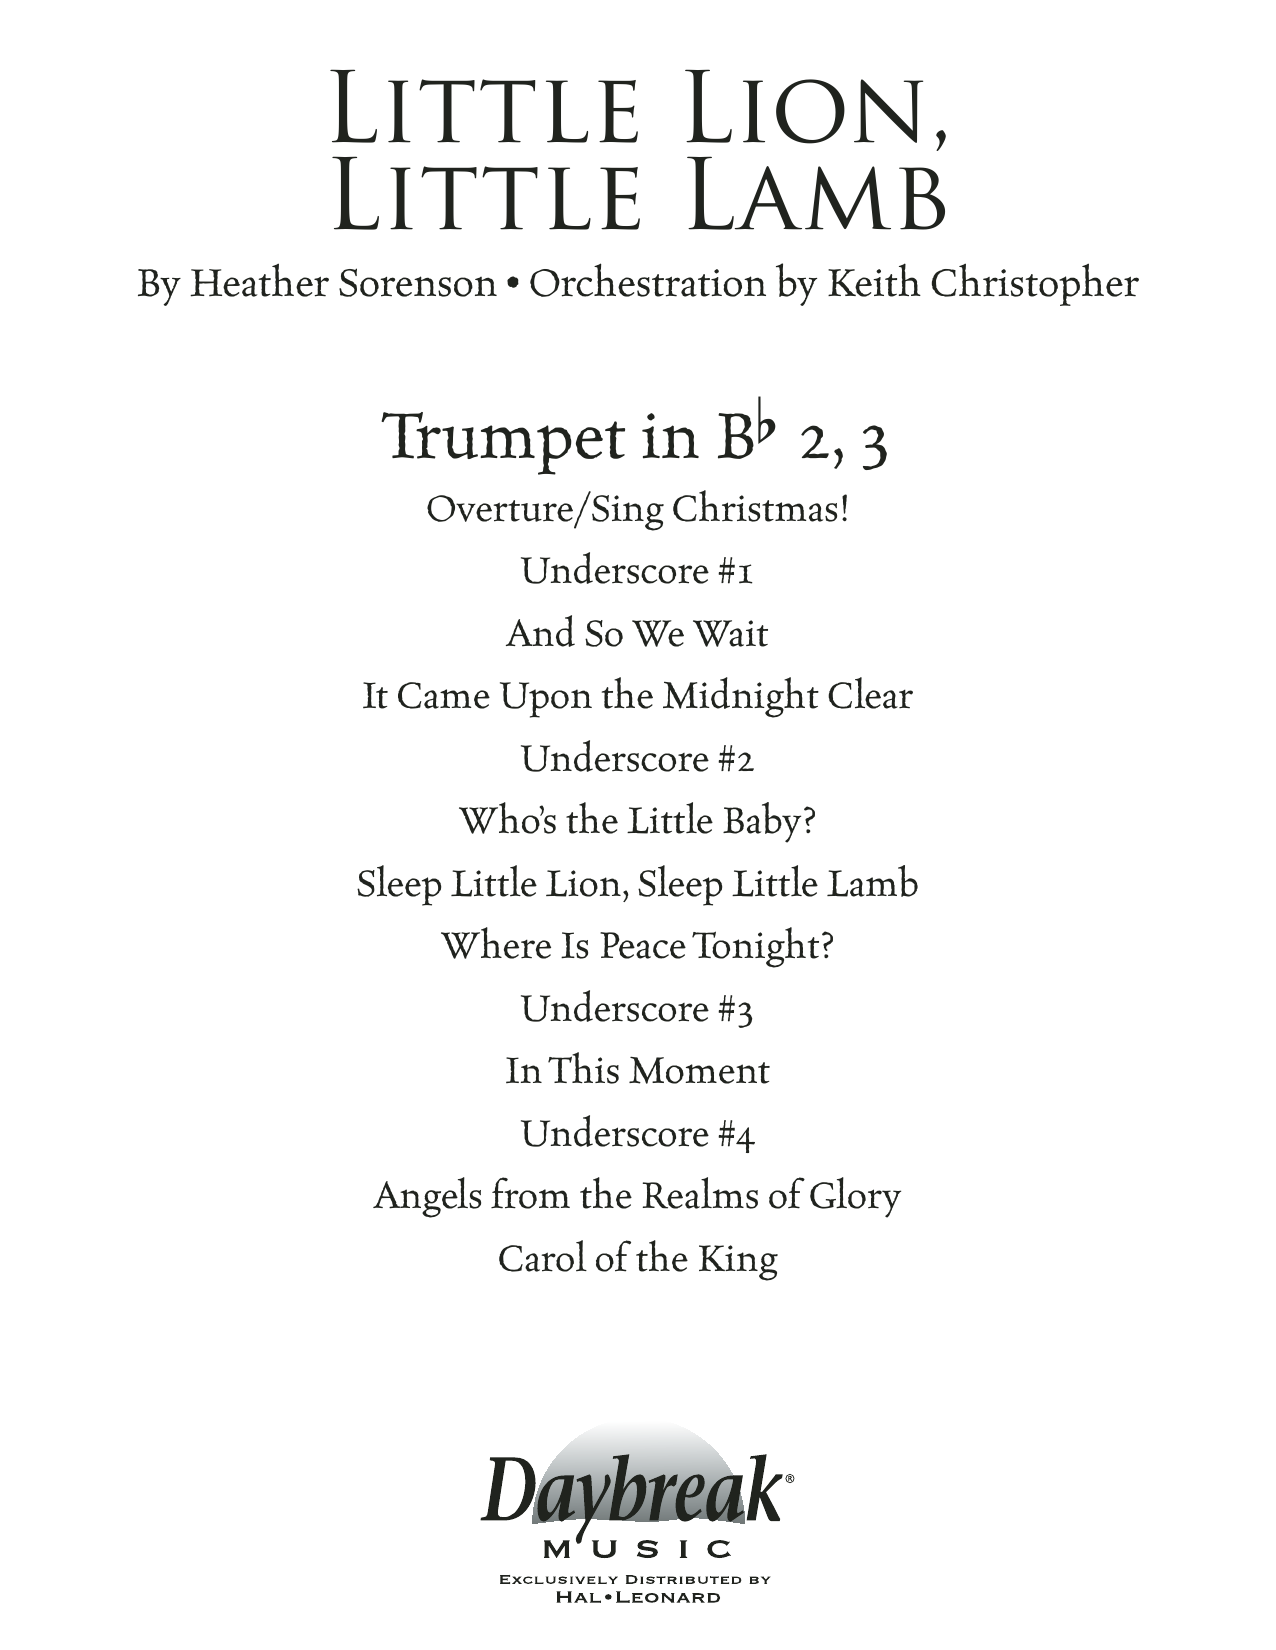 Heather Sorenson Little Lion, Little Lamb - Bb Trumpet 2,3 sheet music notes and chords. Download Printable PDF.